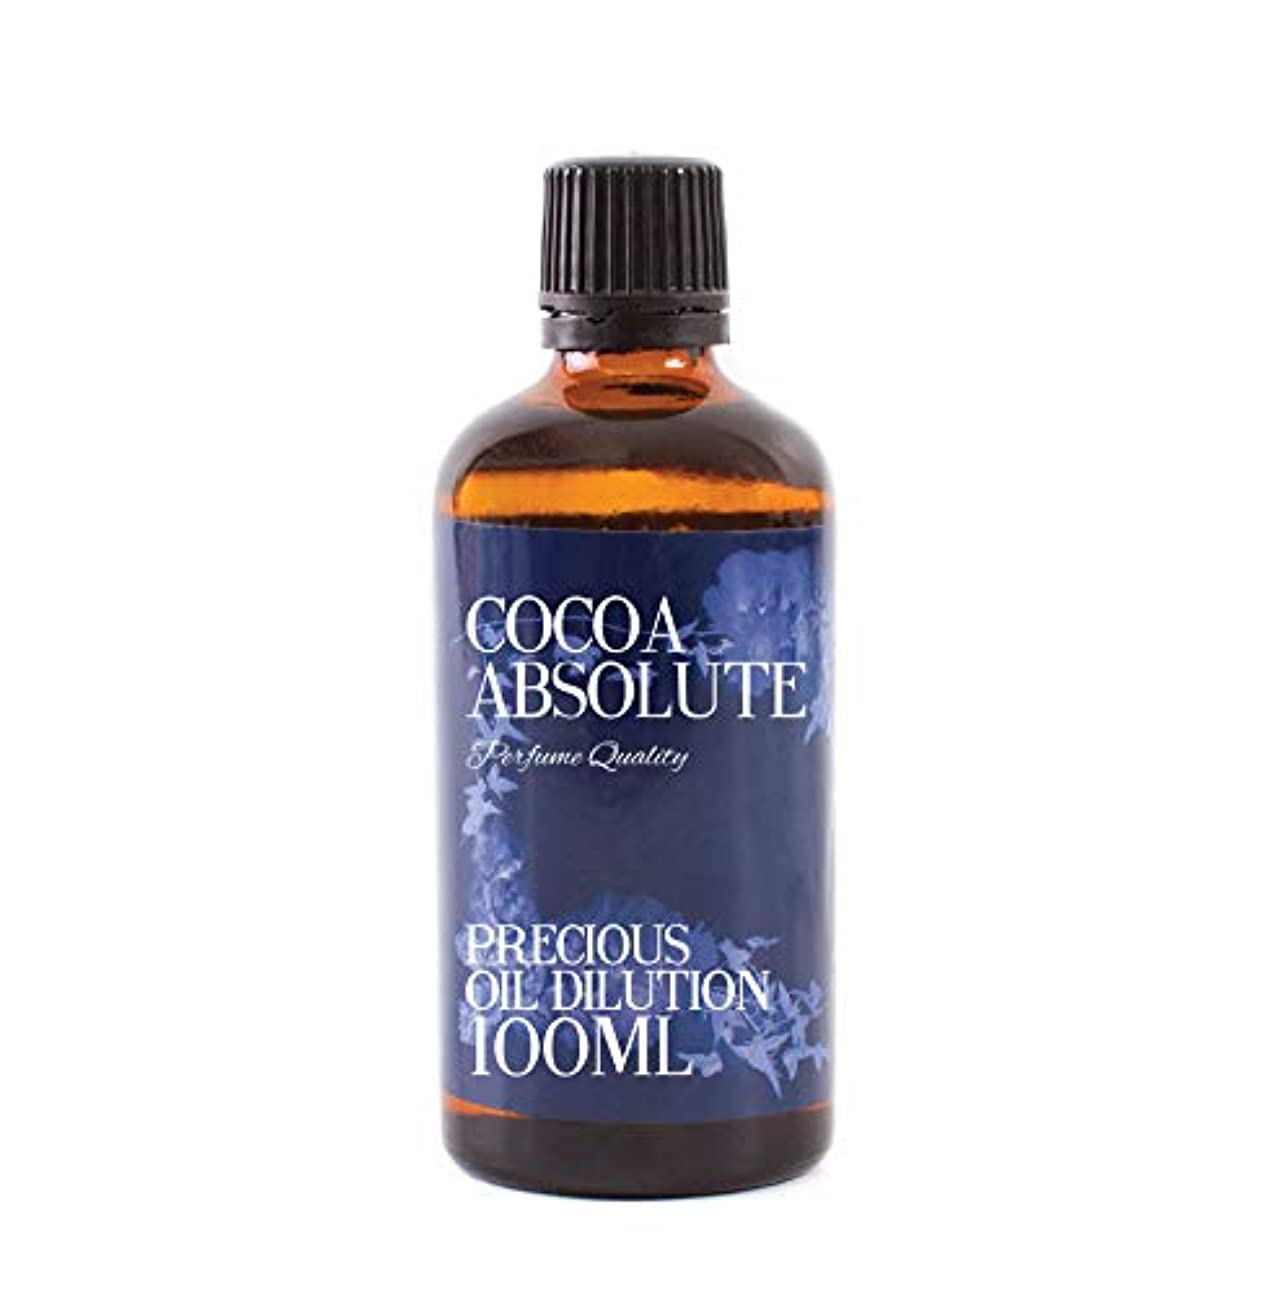 Cocoa PQ Absolute Oil Dilution - 100ml